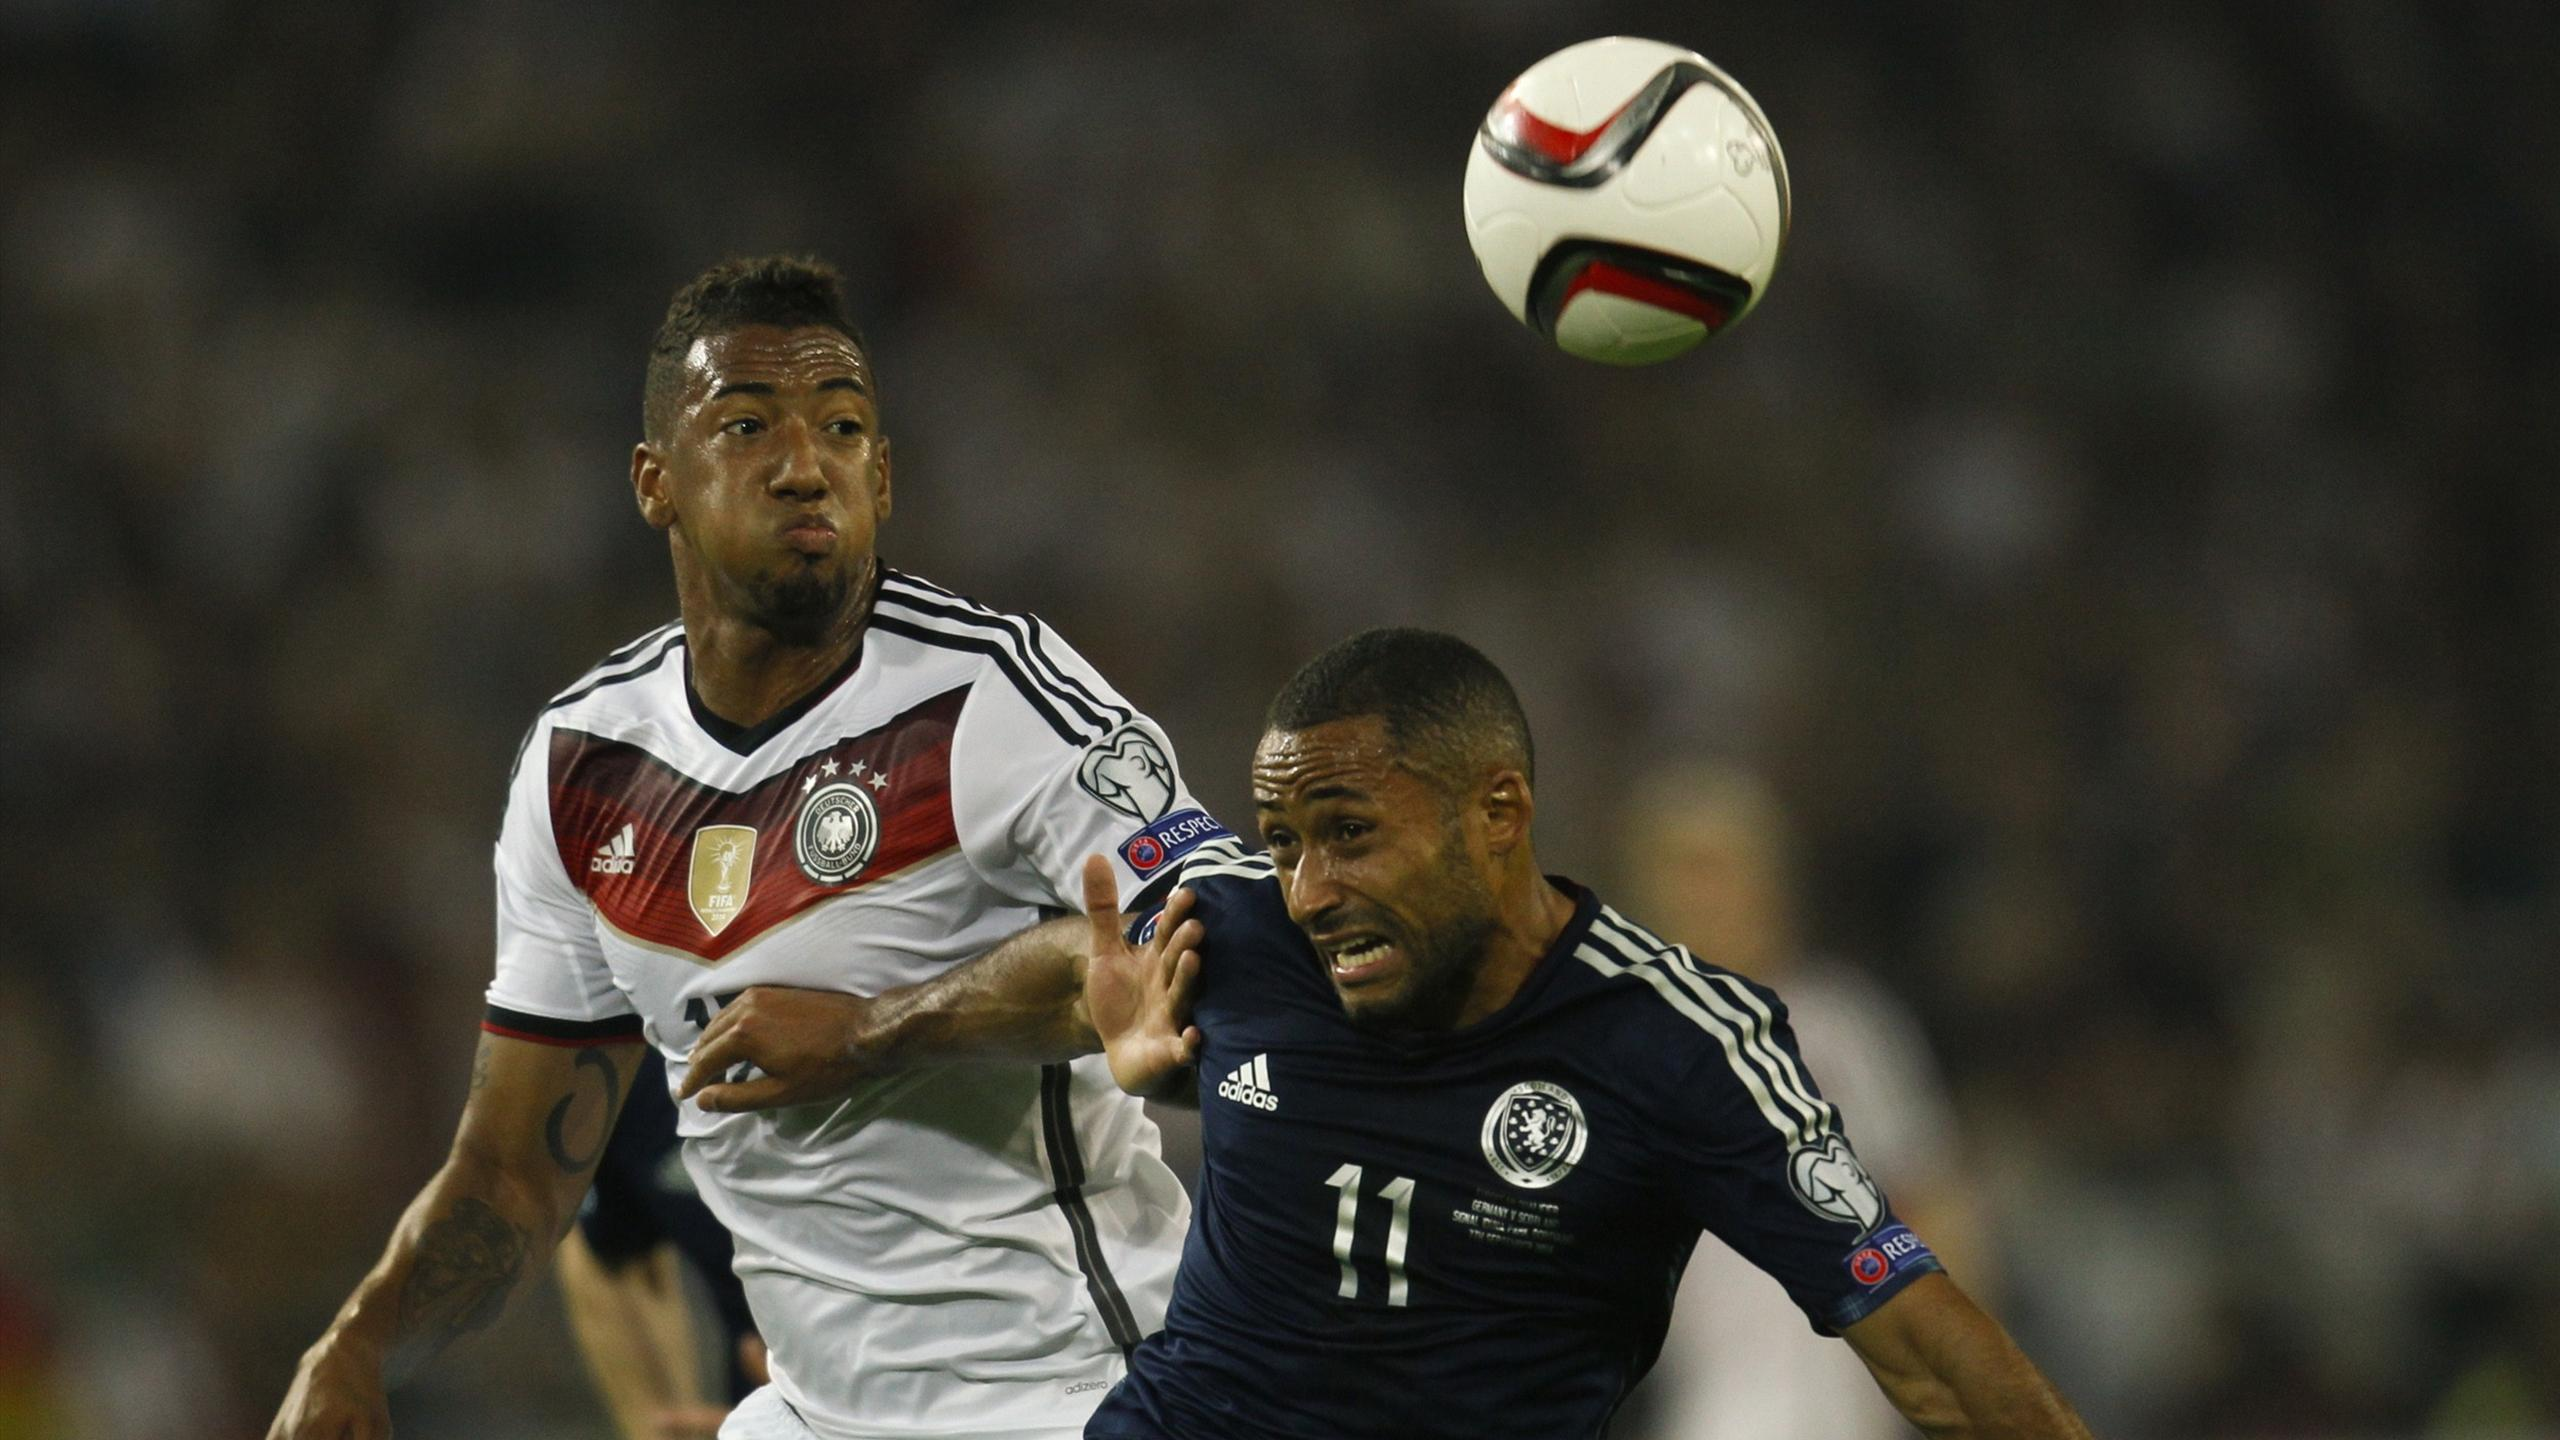 Germany's Jerome Boateng (L) and Scotland's Ikechi Anya fight for the ball during their Euro 2016 qualifying soccer match in Dortmund September 7, 2014 (Reuters)